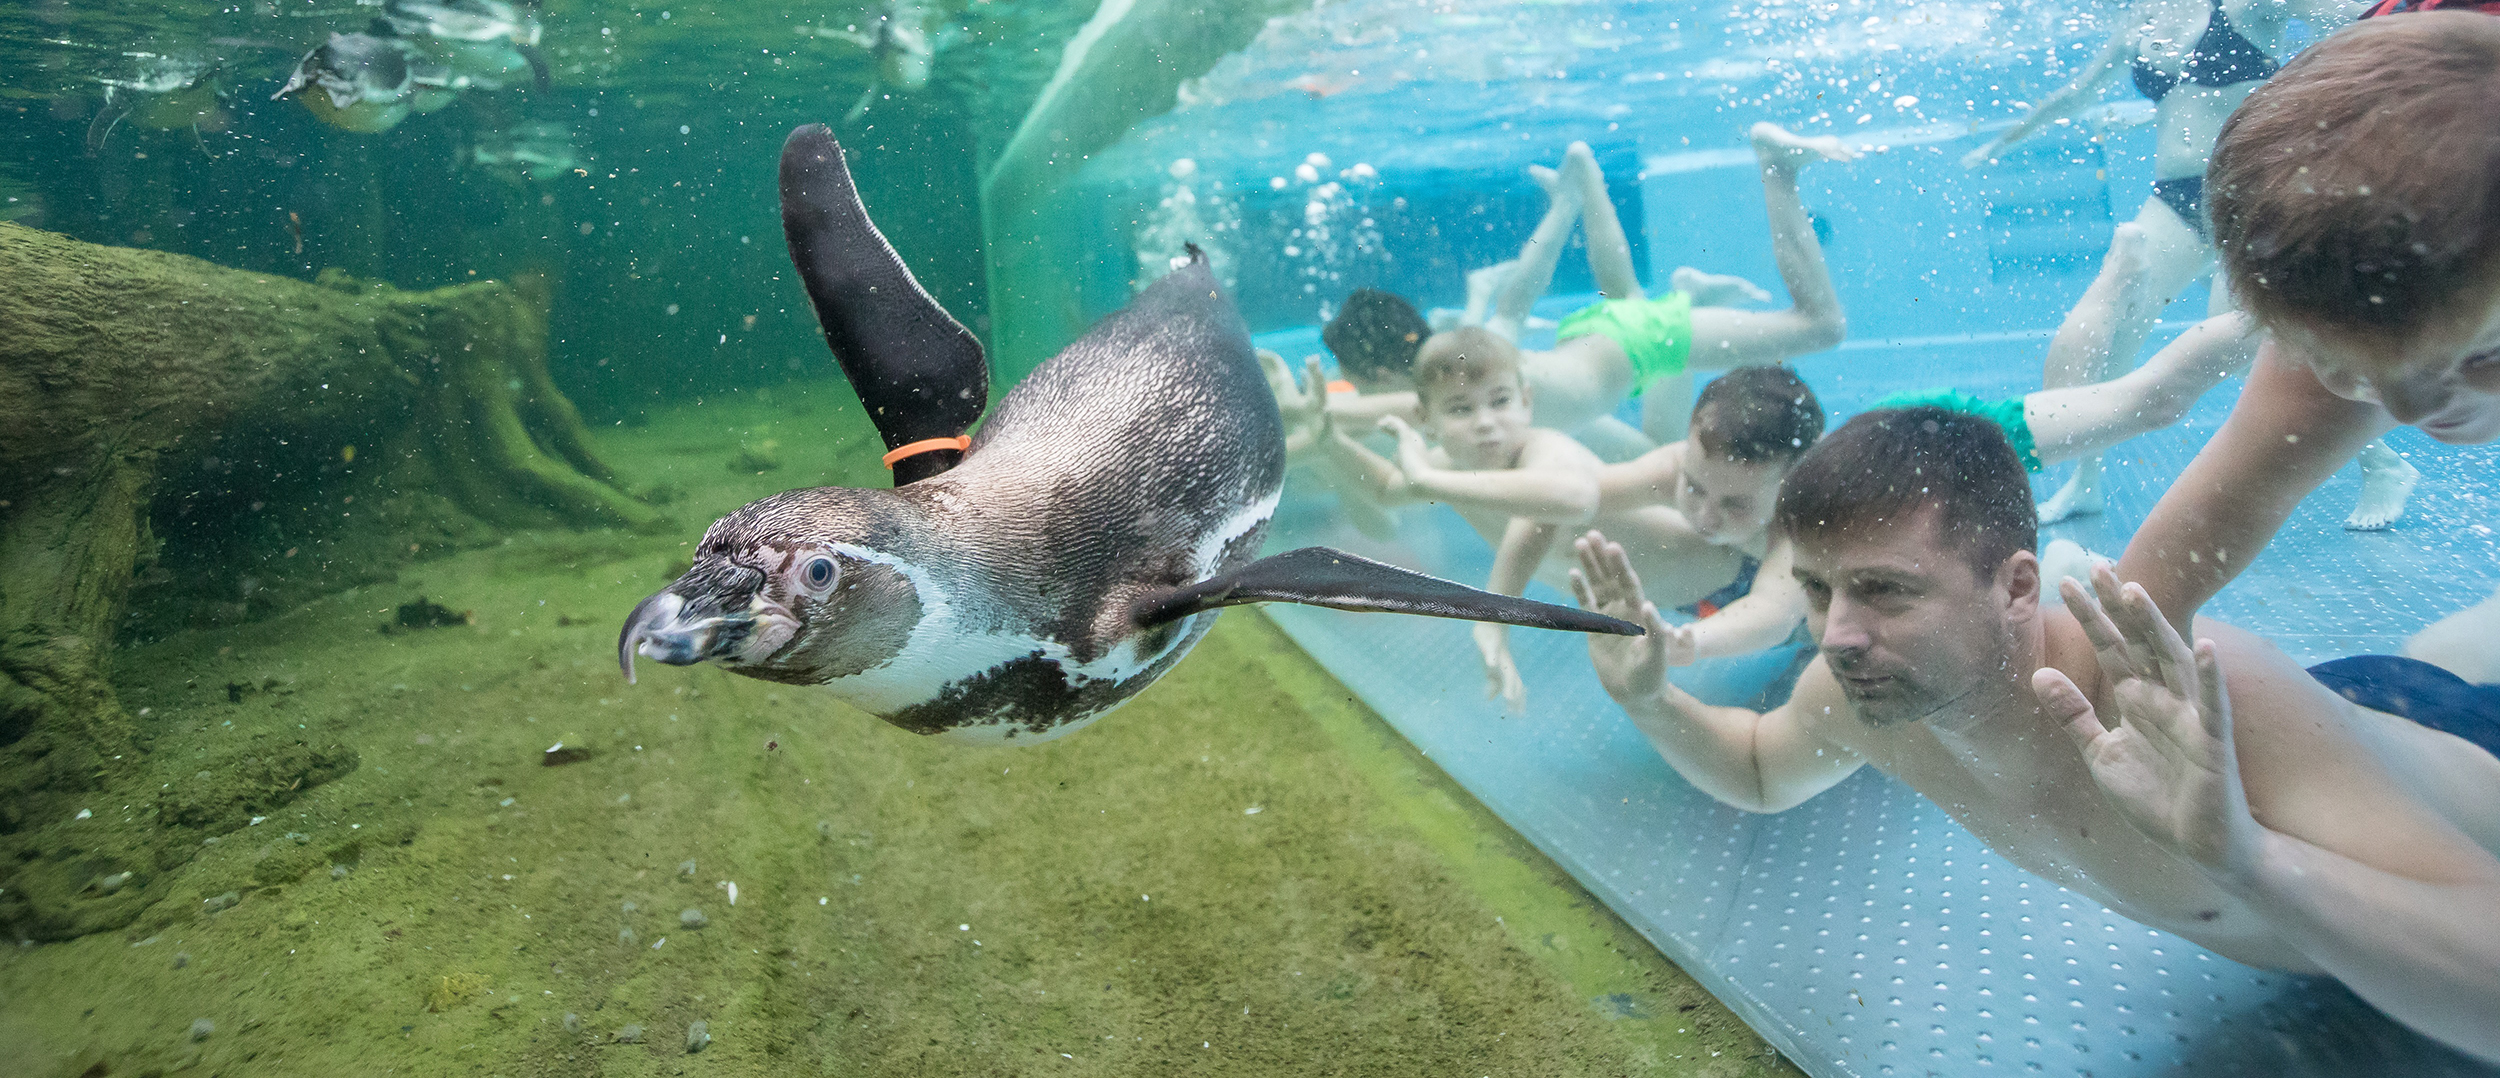 Swim with penguins in Spreewald